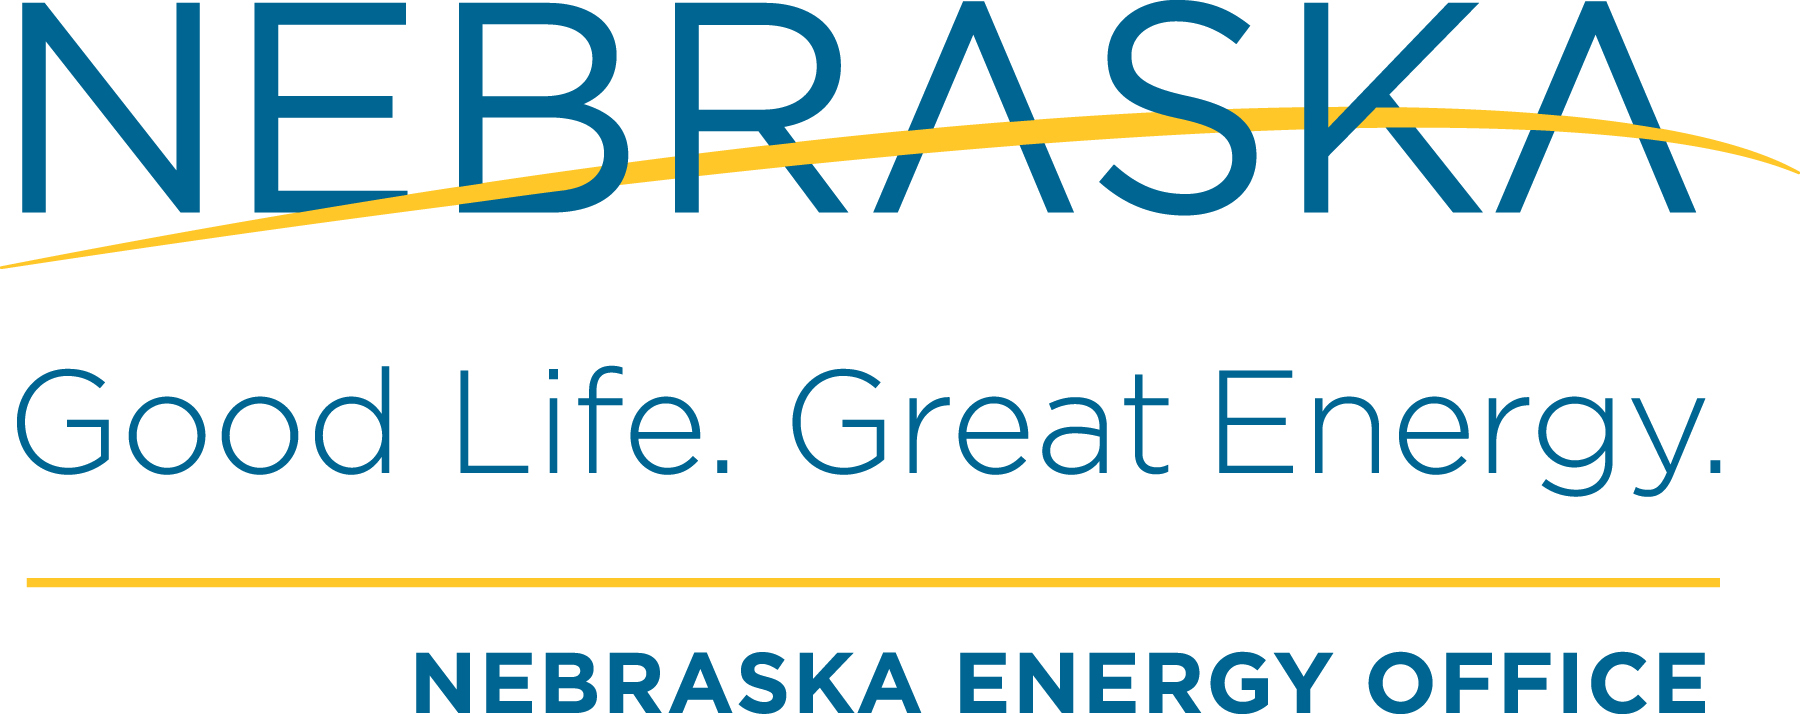 2018 Nebraska Energy Office Logo.jpg